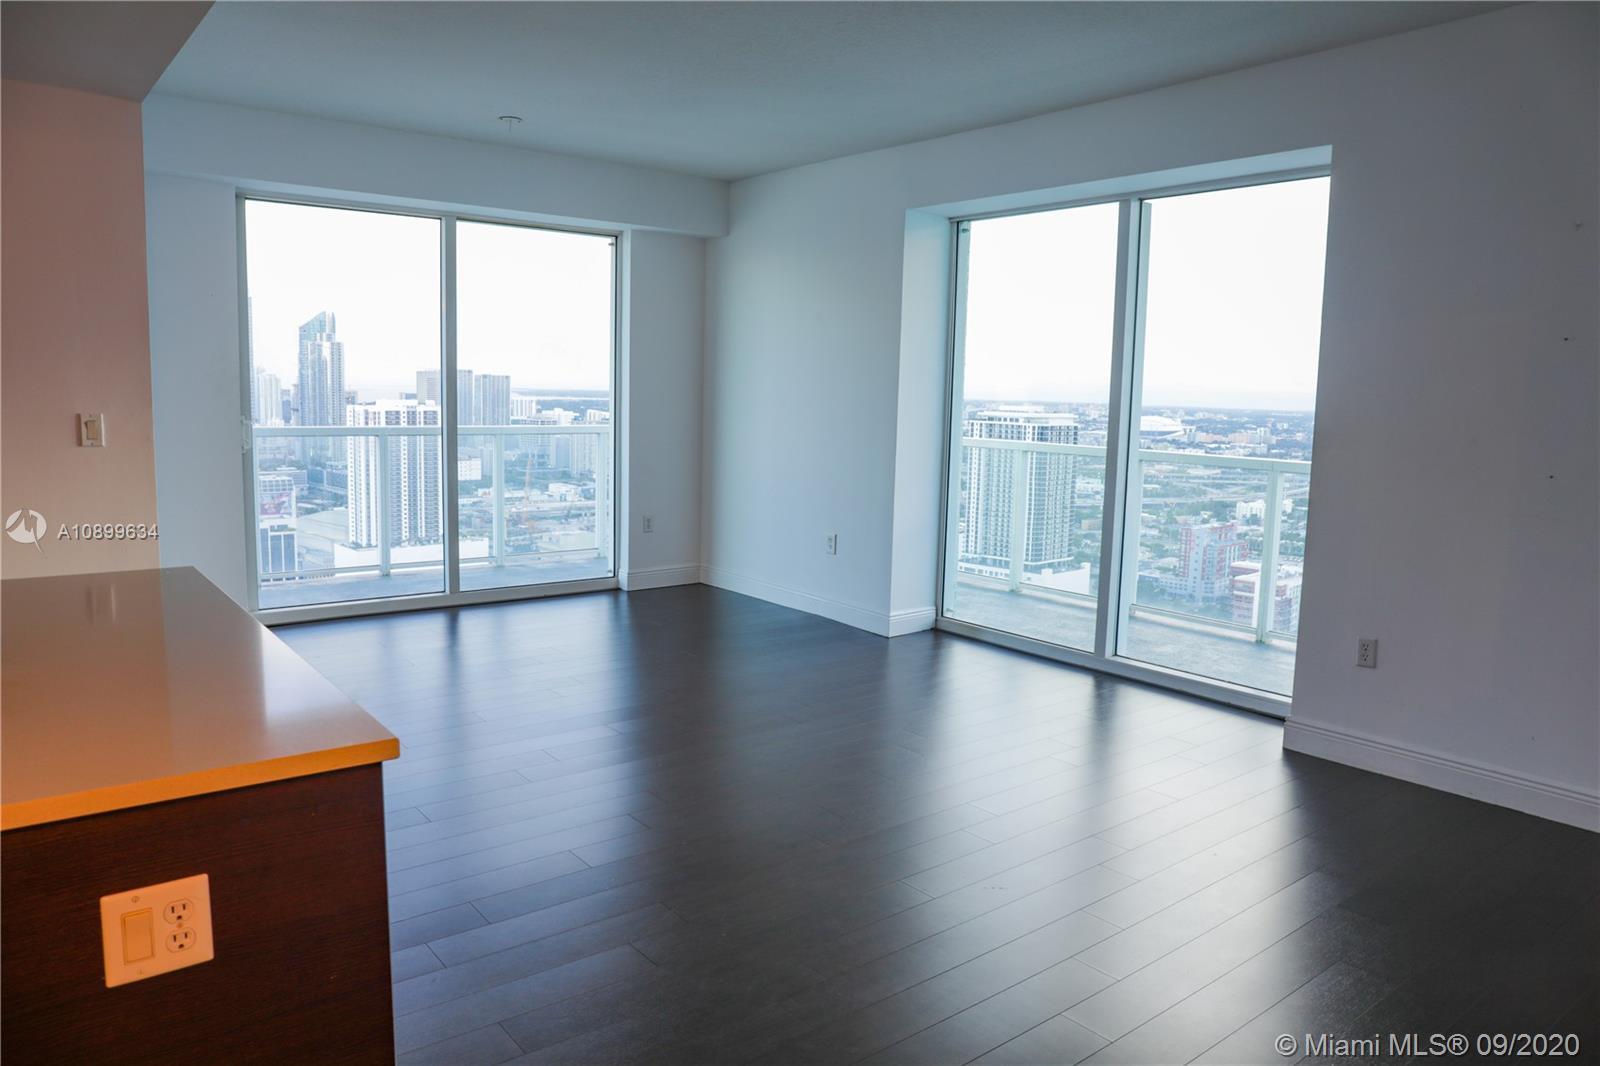 ONE OF THE BEST VIEWS IN MIAMI.  This apartment is a box in the sky with good size bedrooms, big windows, privacy and views everywhere.  Available from 8/15